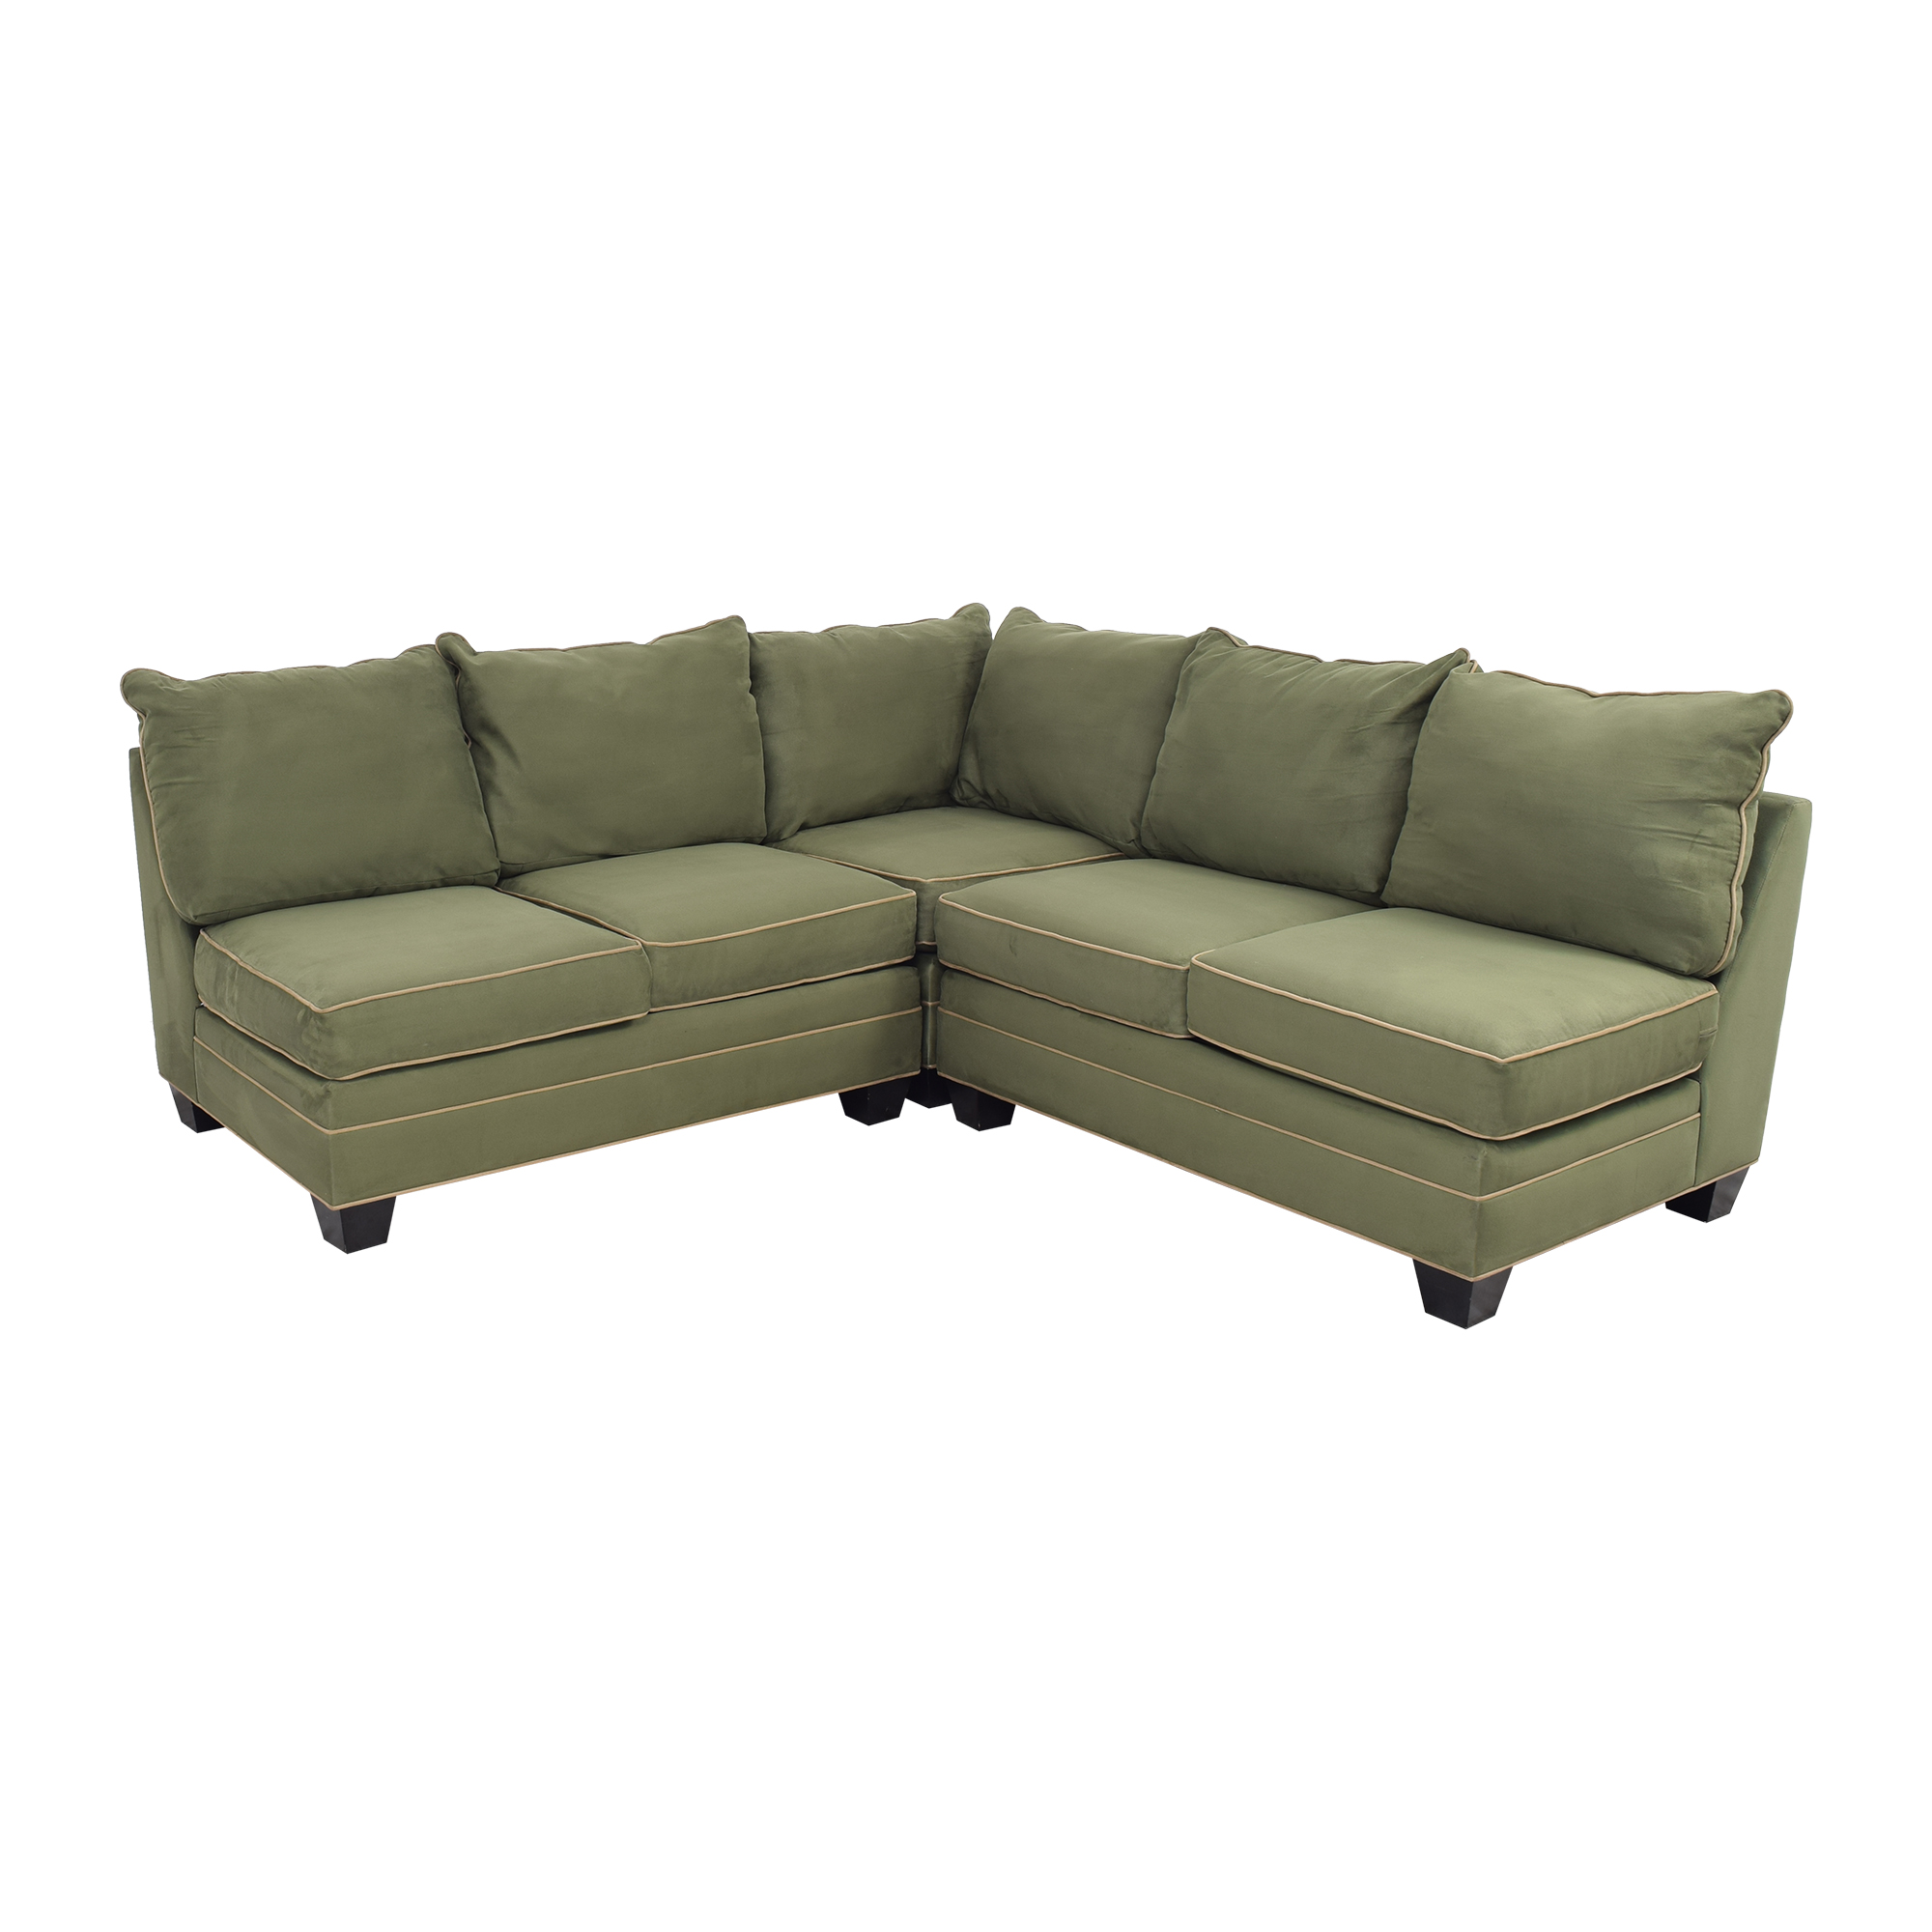 HM Richards Furniture HM Richards Furniture Sectional Sofa pa